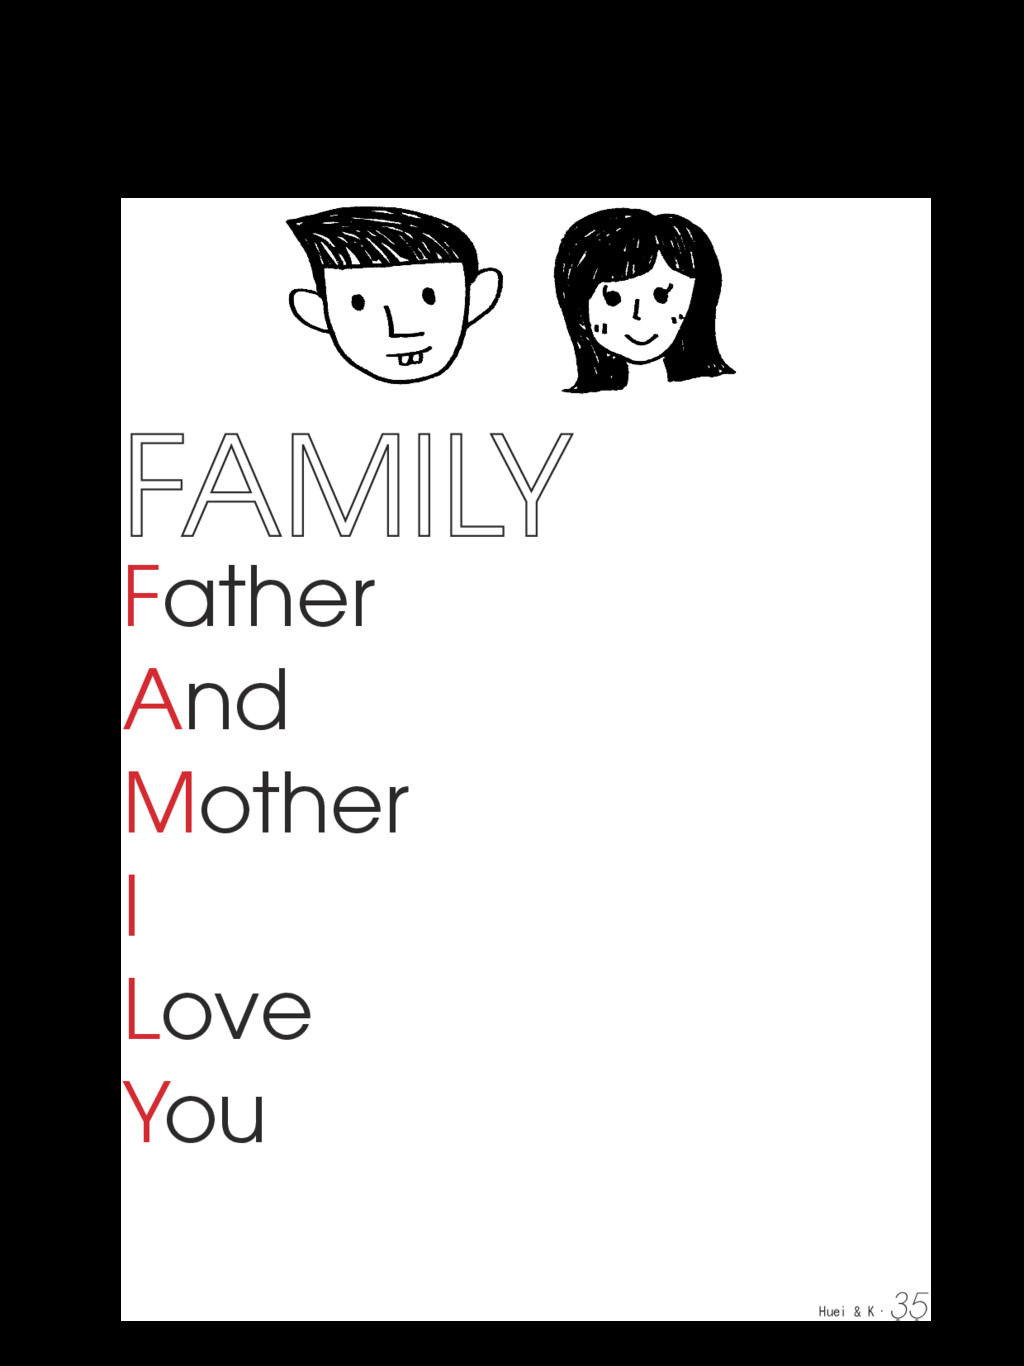 Father And Mother I Love You Huei & K. 35